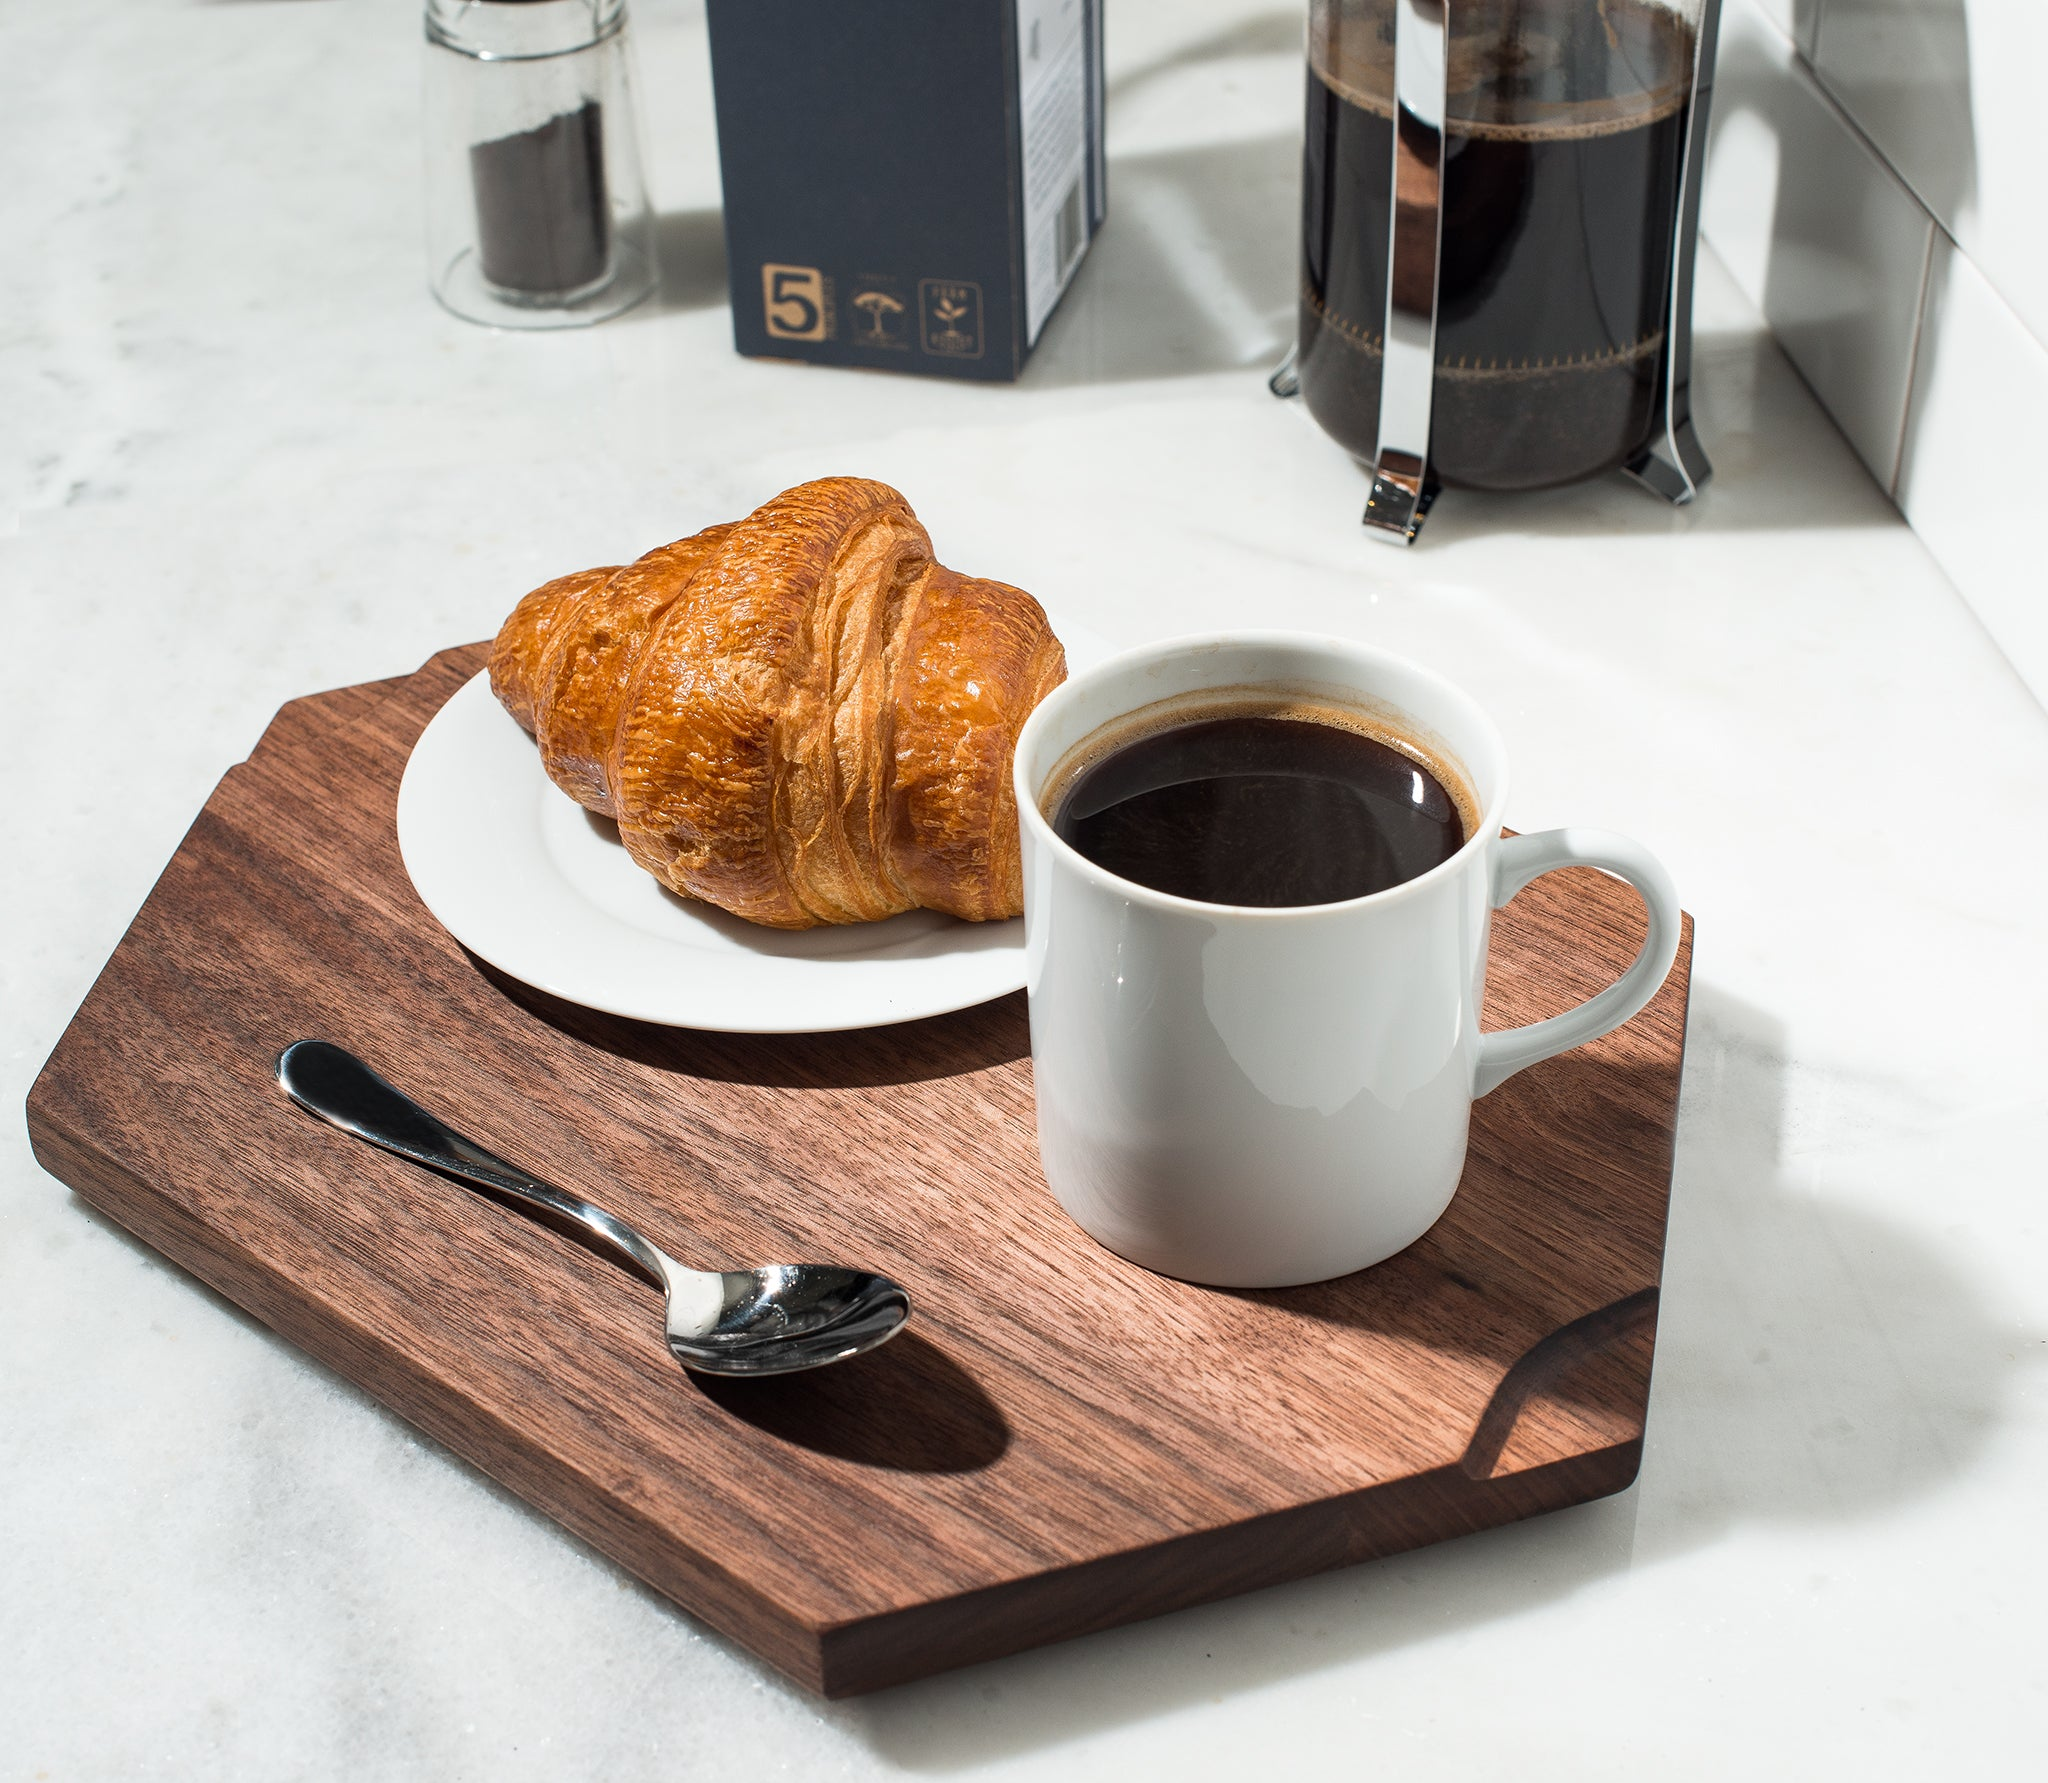 Coffee and a croissant is pure happiness.